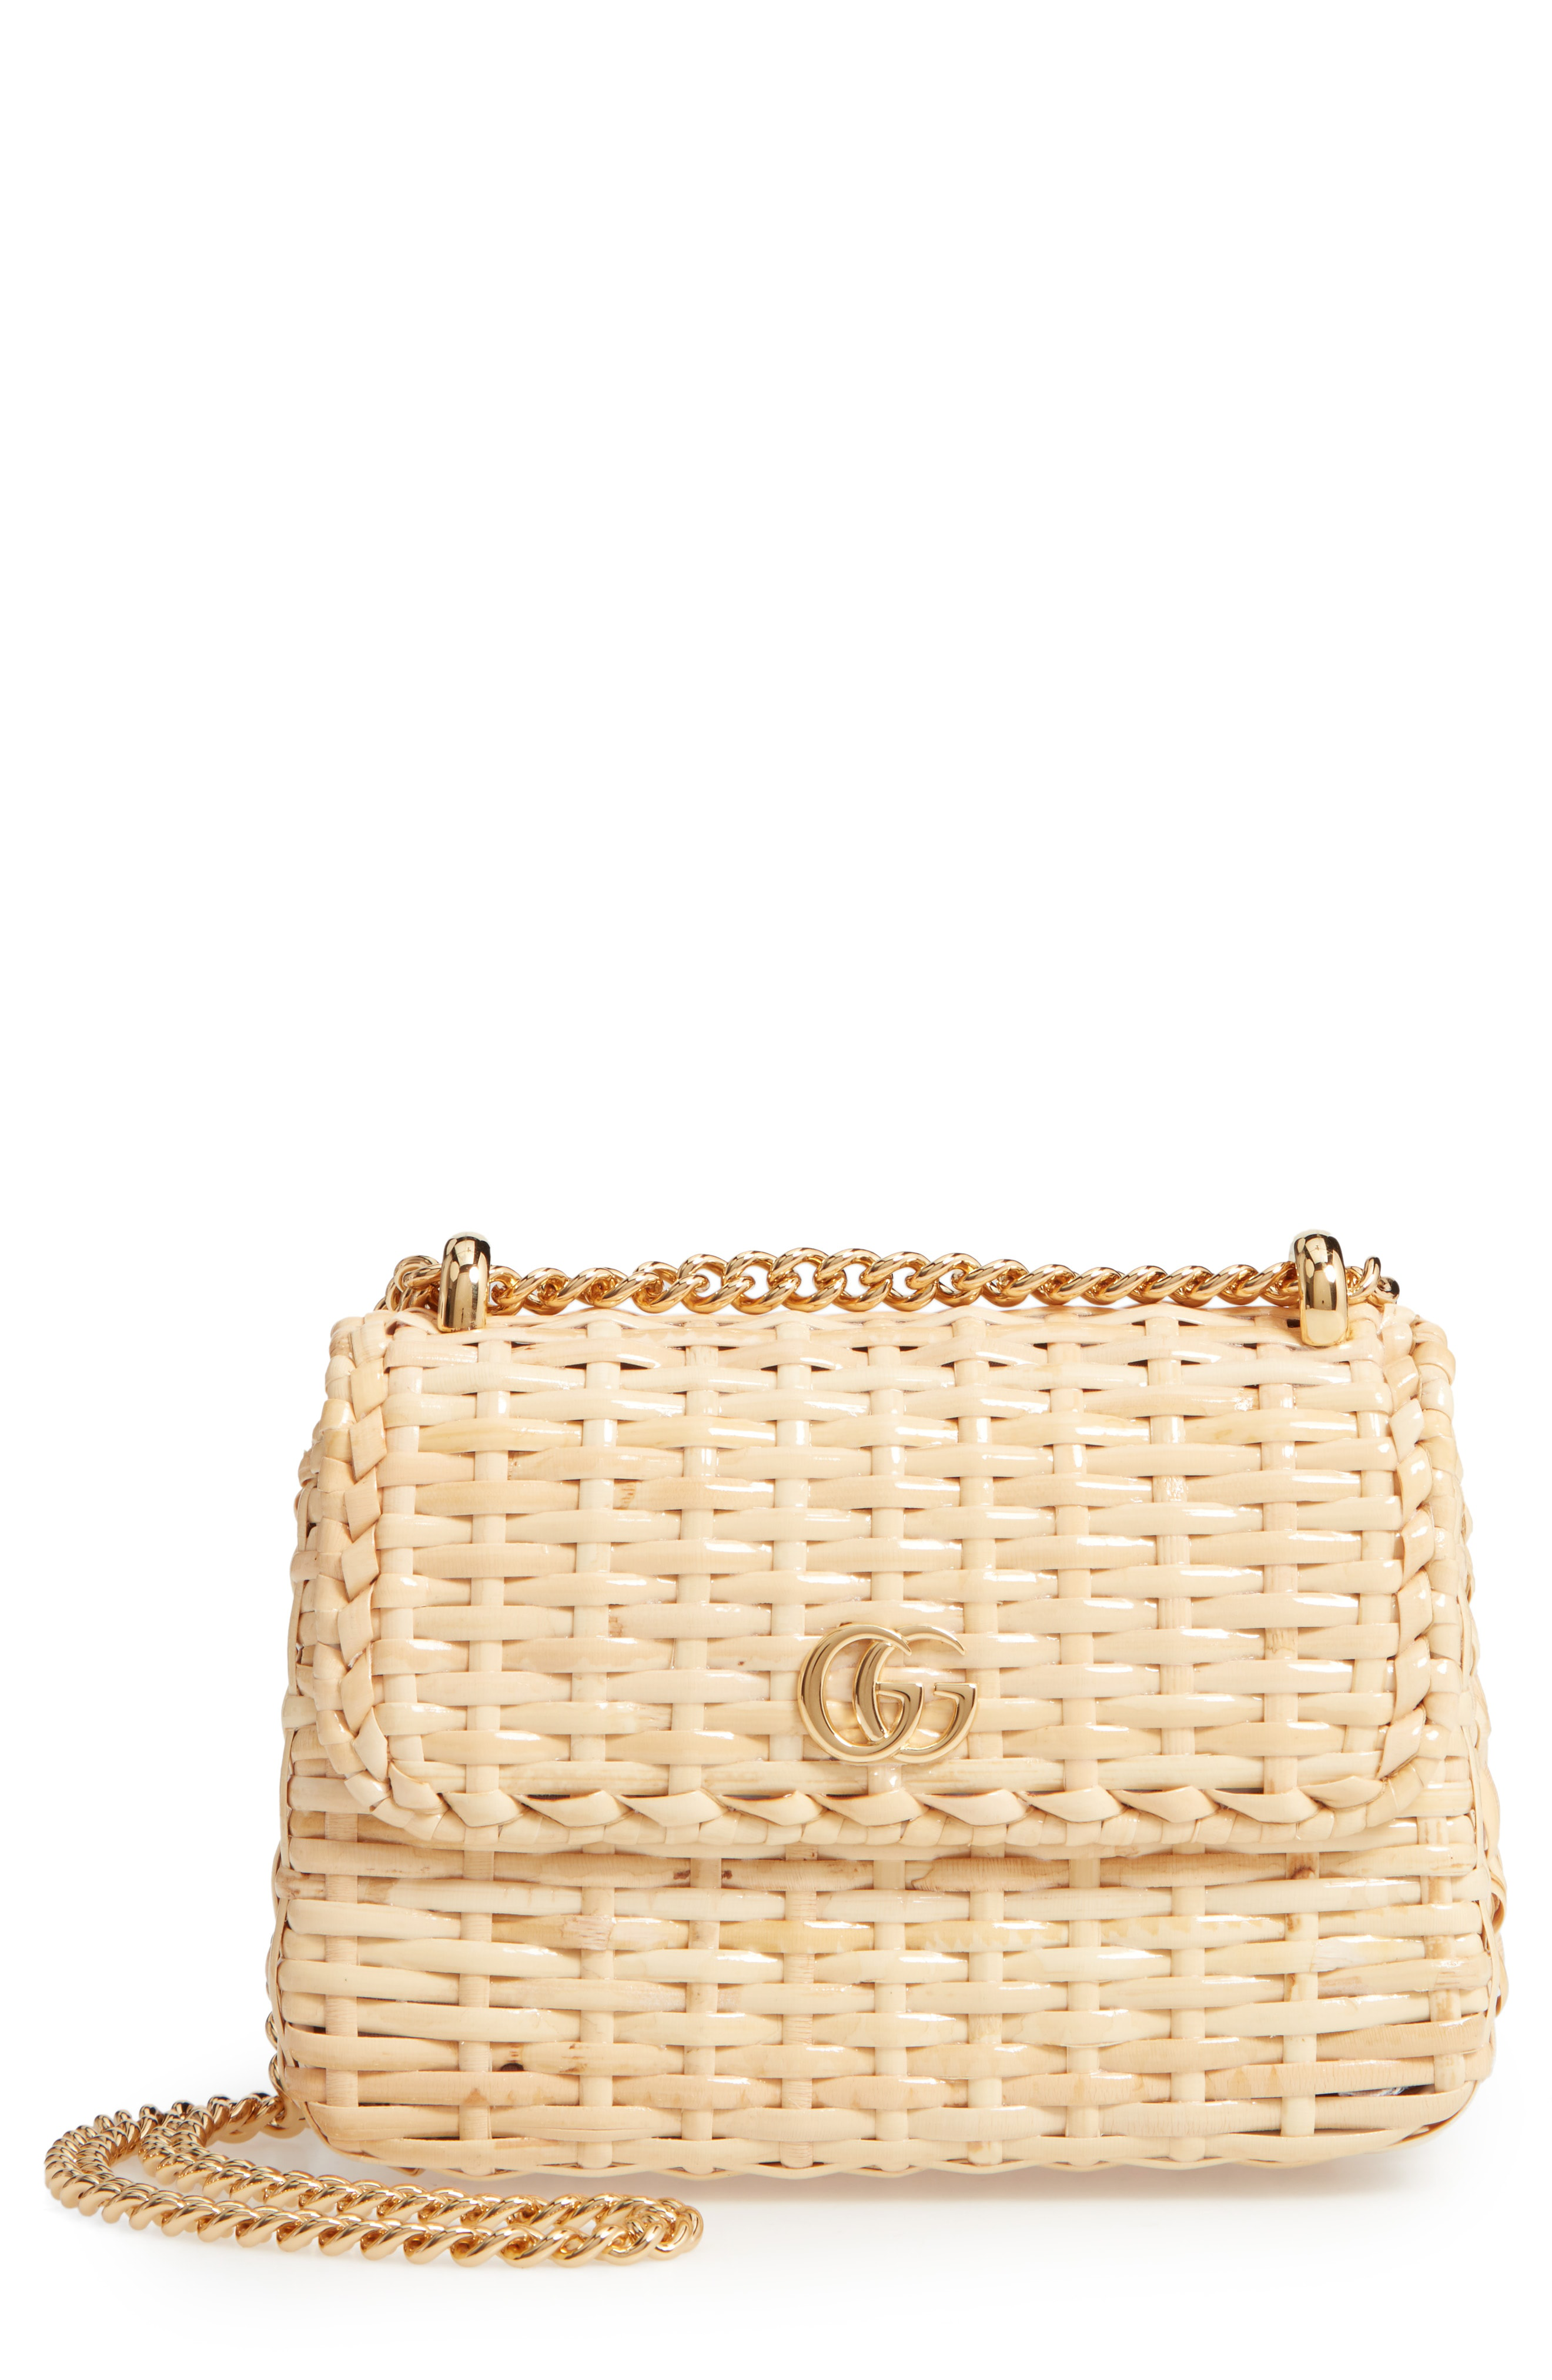 24c435894c354f Gucci Linea Cestino Mini Leather-Trimmed Wicker Shoulder Bag In Beige